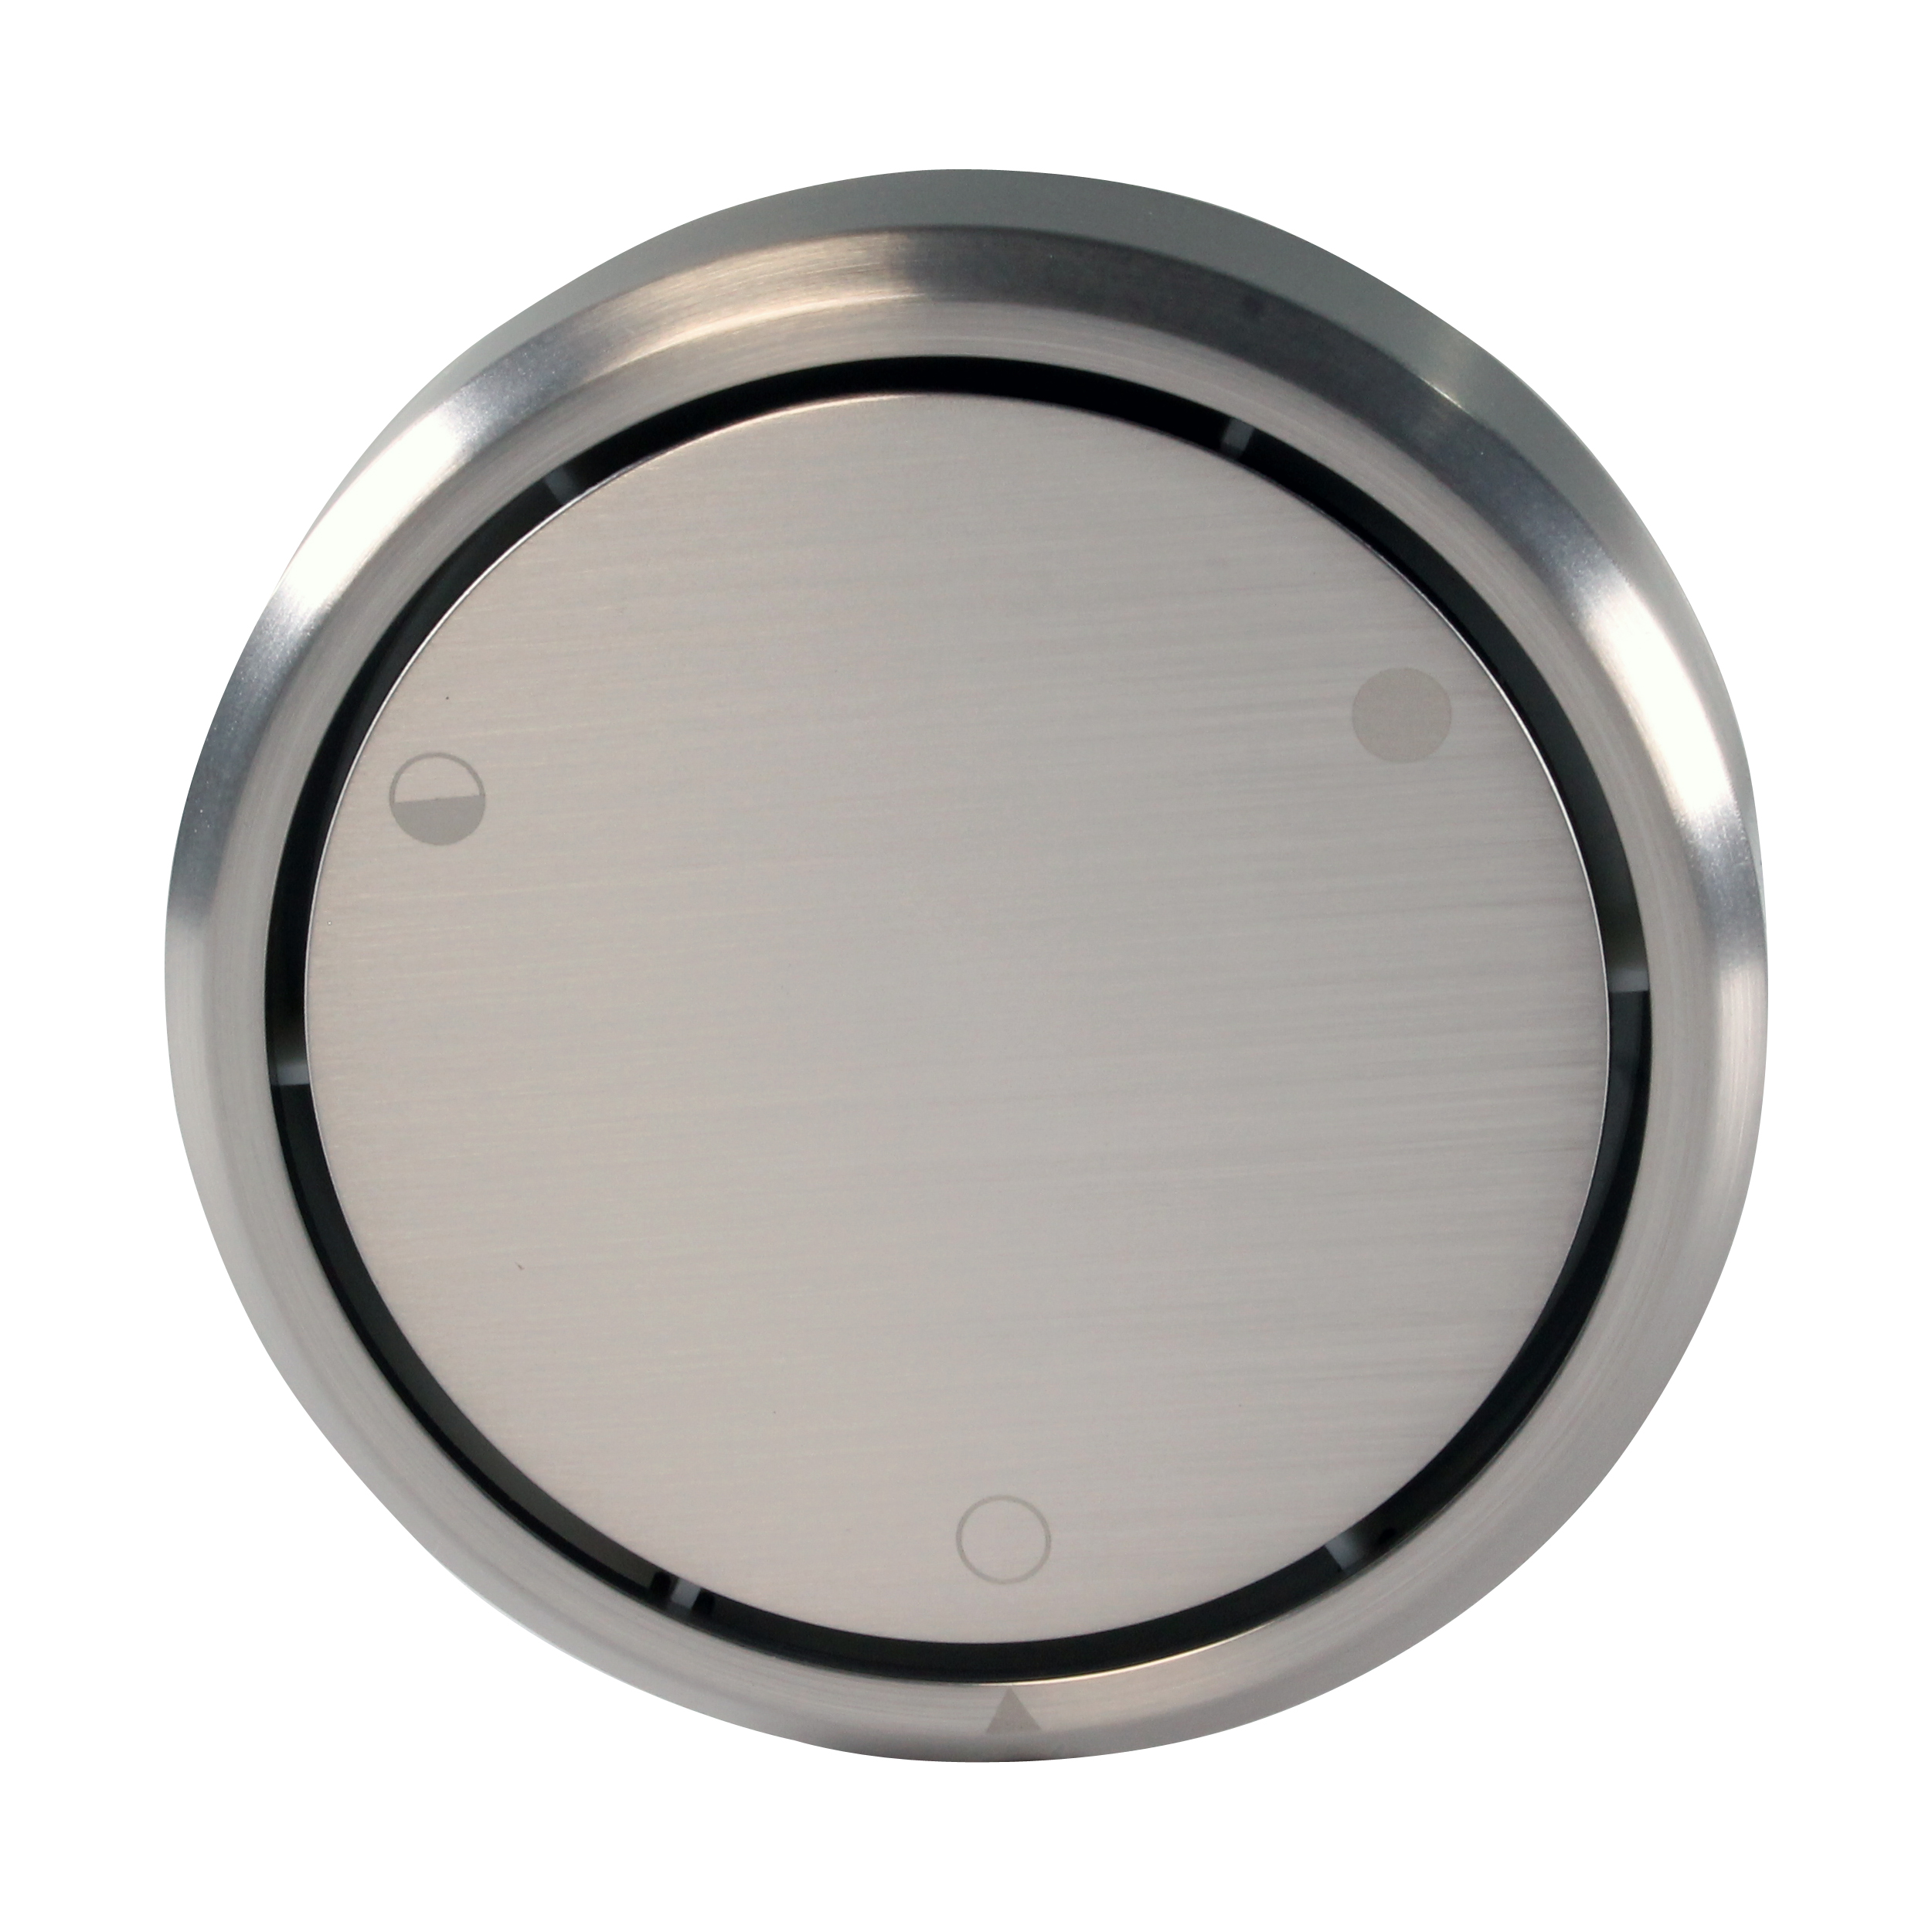 Westbrass Round Replacement, Full or Partial Closing Metal Overflow D493CHM in Satin Nickel